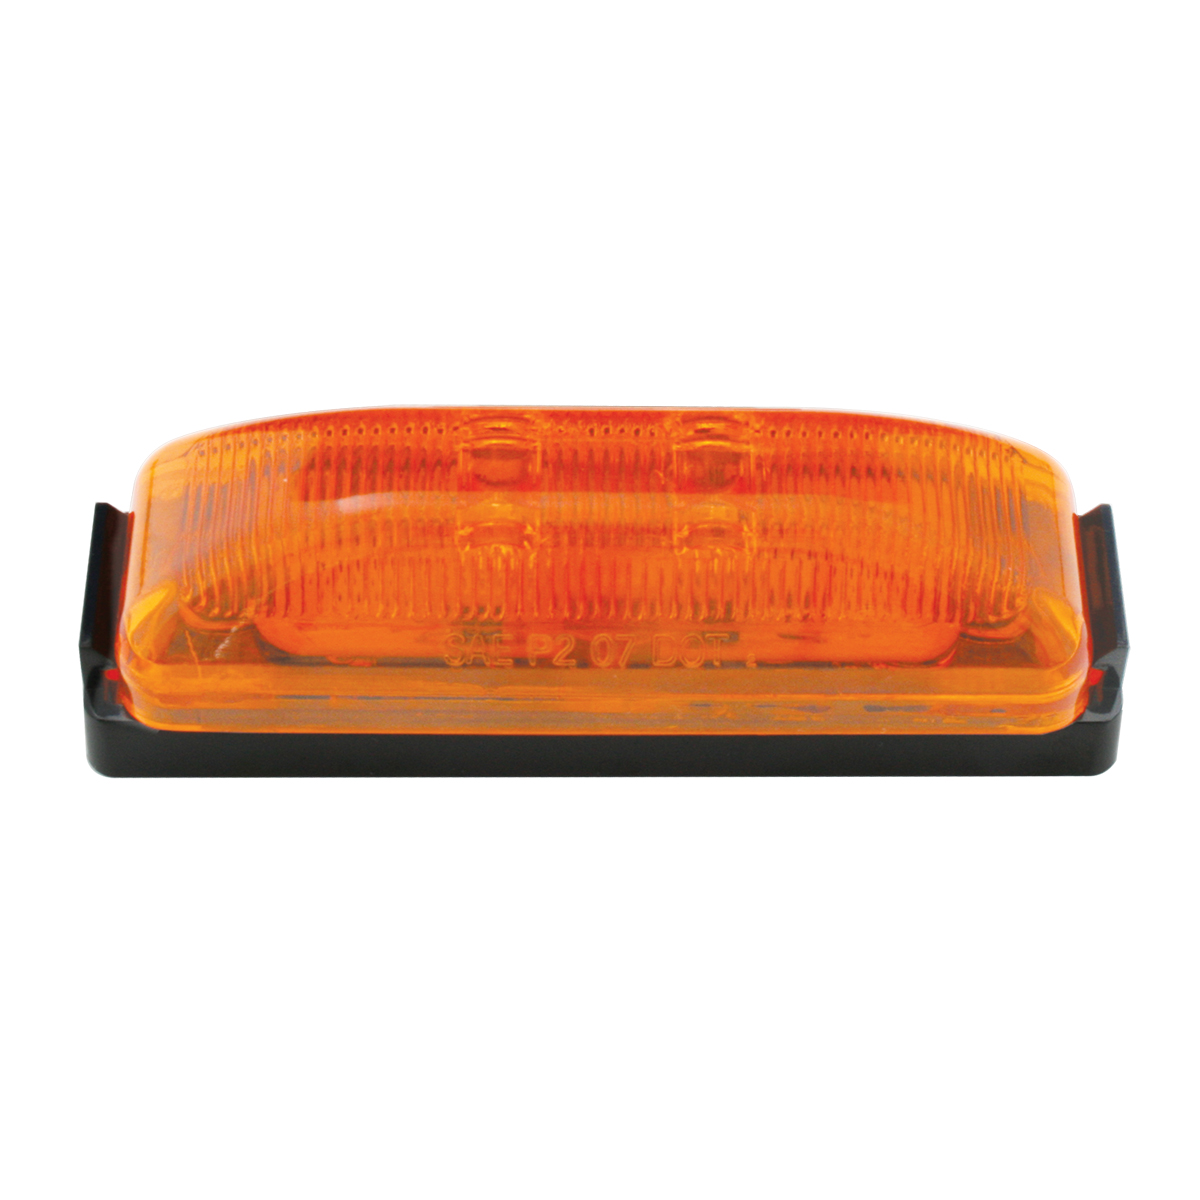 76405 Medium Rectangular Fleet LED Marker Light w/ Black Bracket